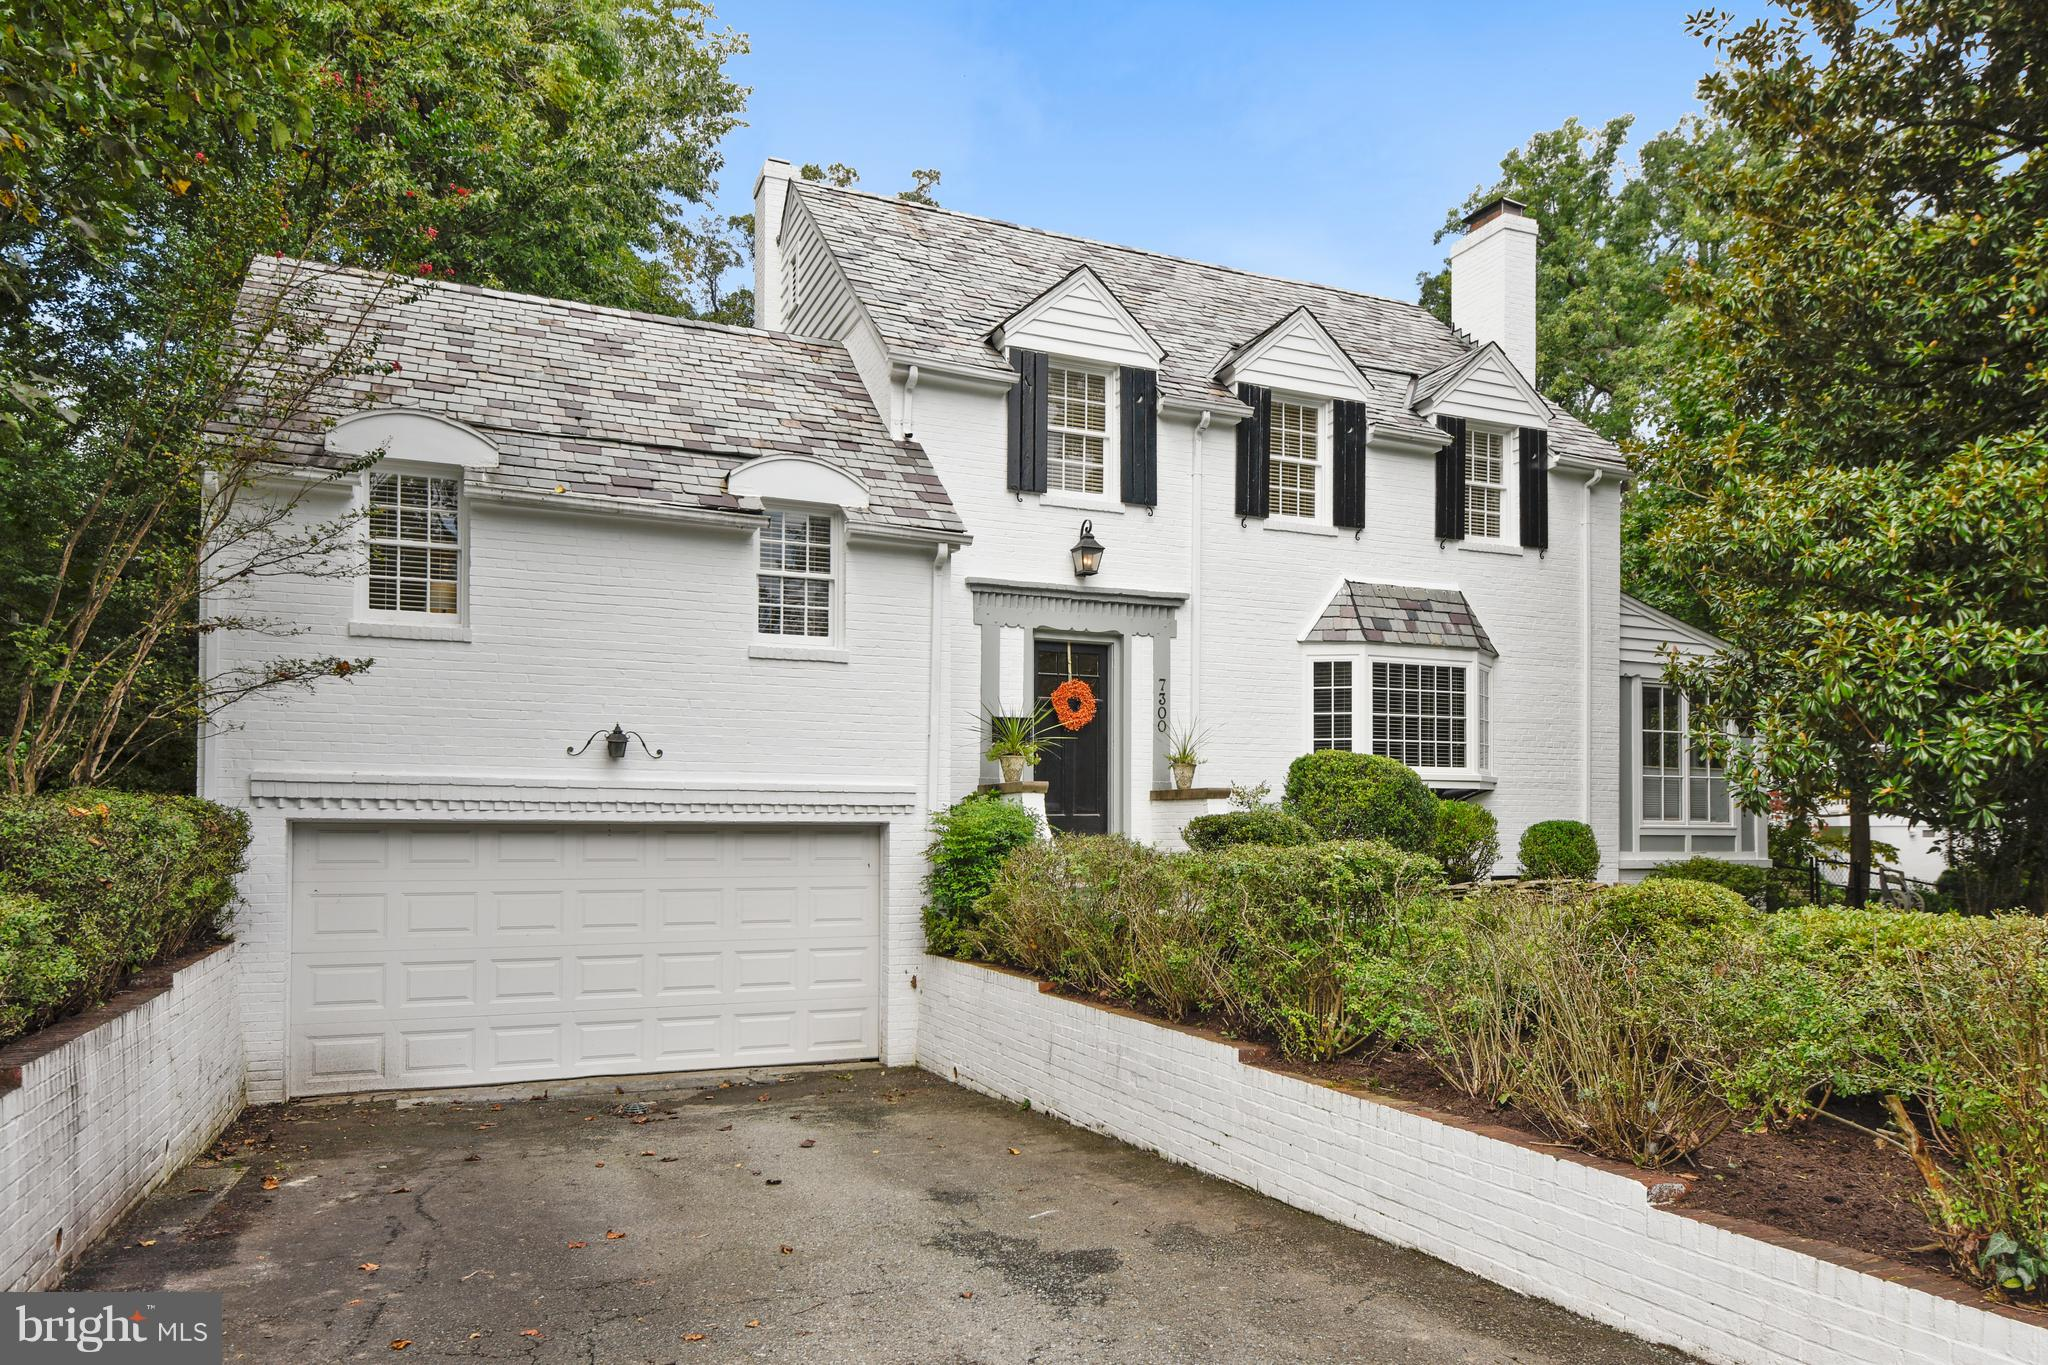 7300 ROLLINGWOOD DRIVE, CHEVY CHASE, MD 20815